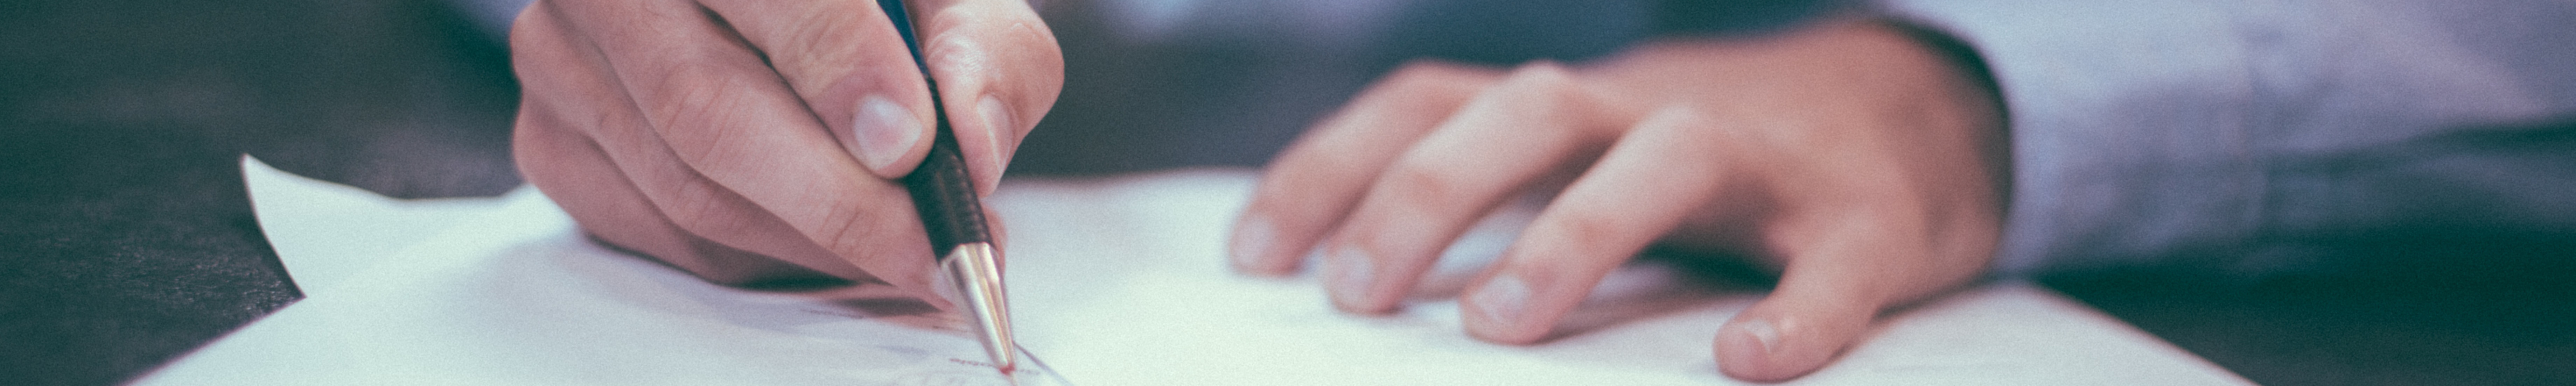 Hands holding pen writing on a piece of paper